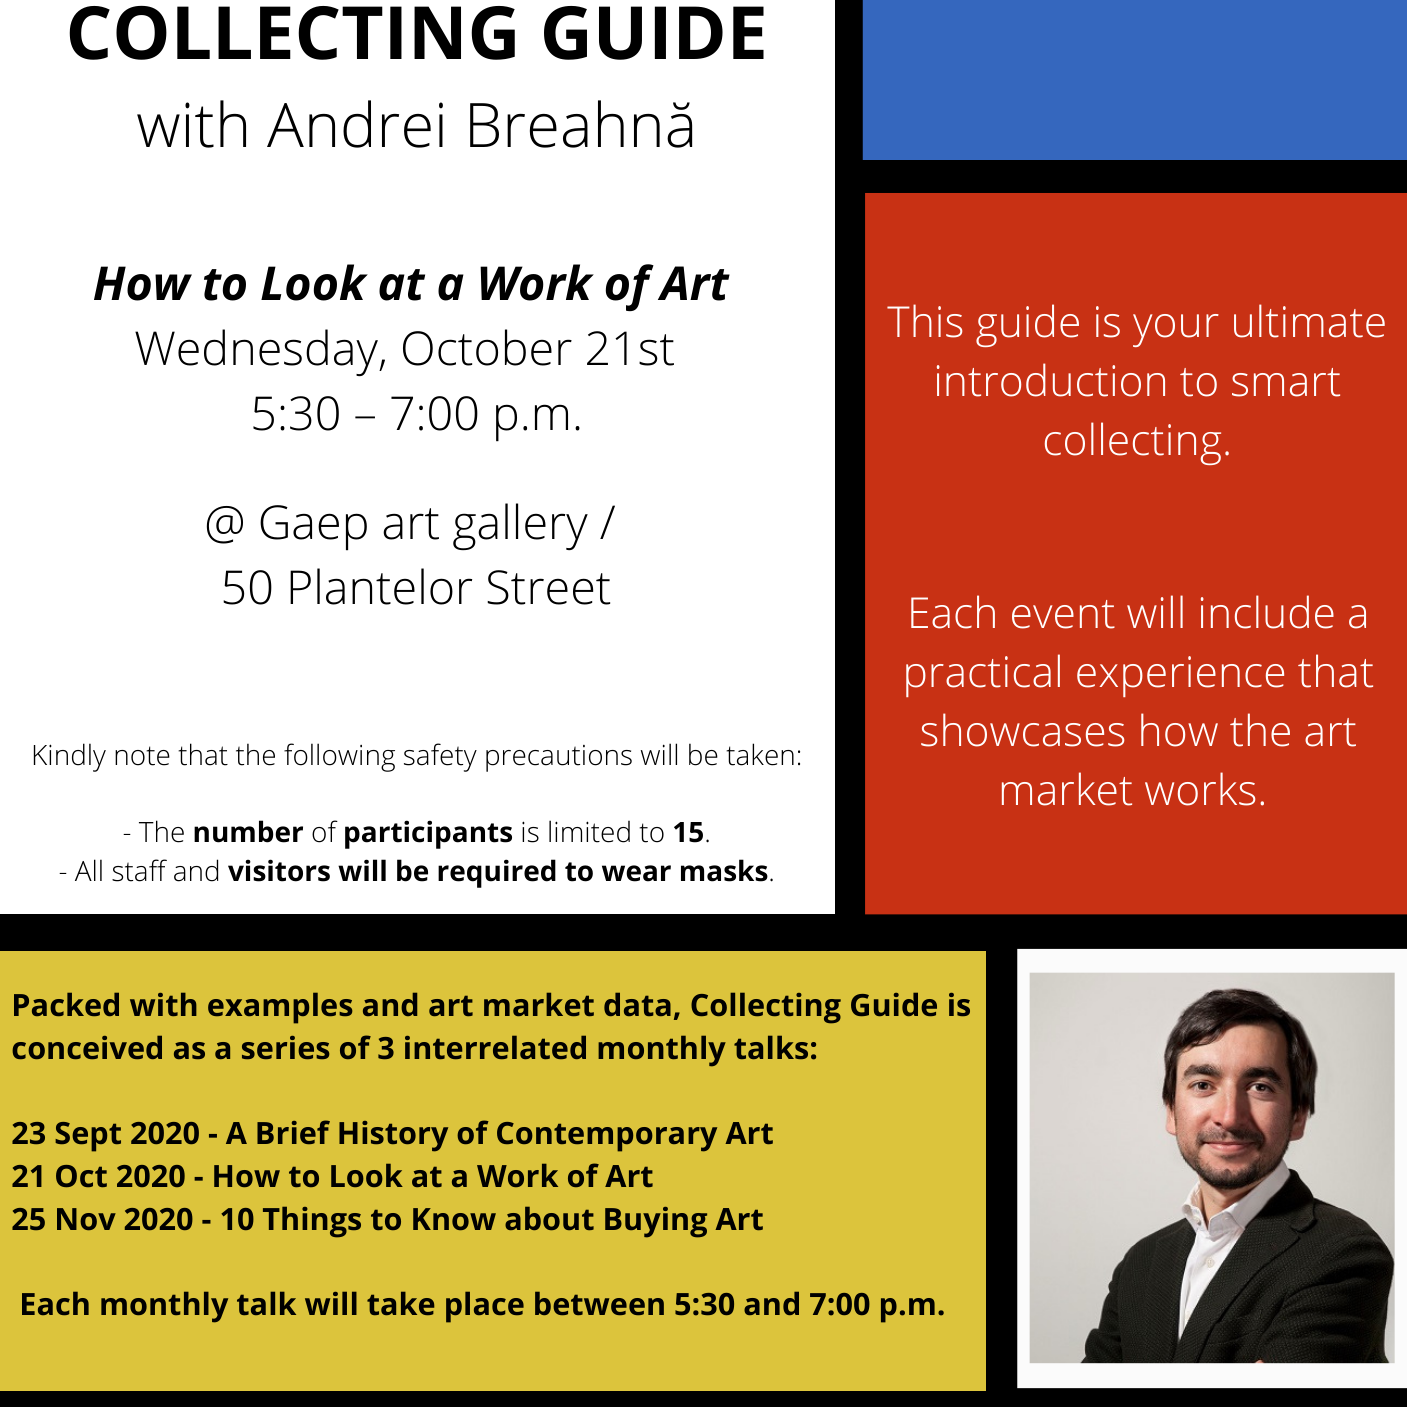 COLLECTING GUIDE - How to Look at a Work of Art